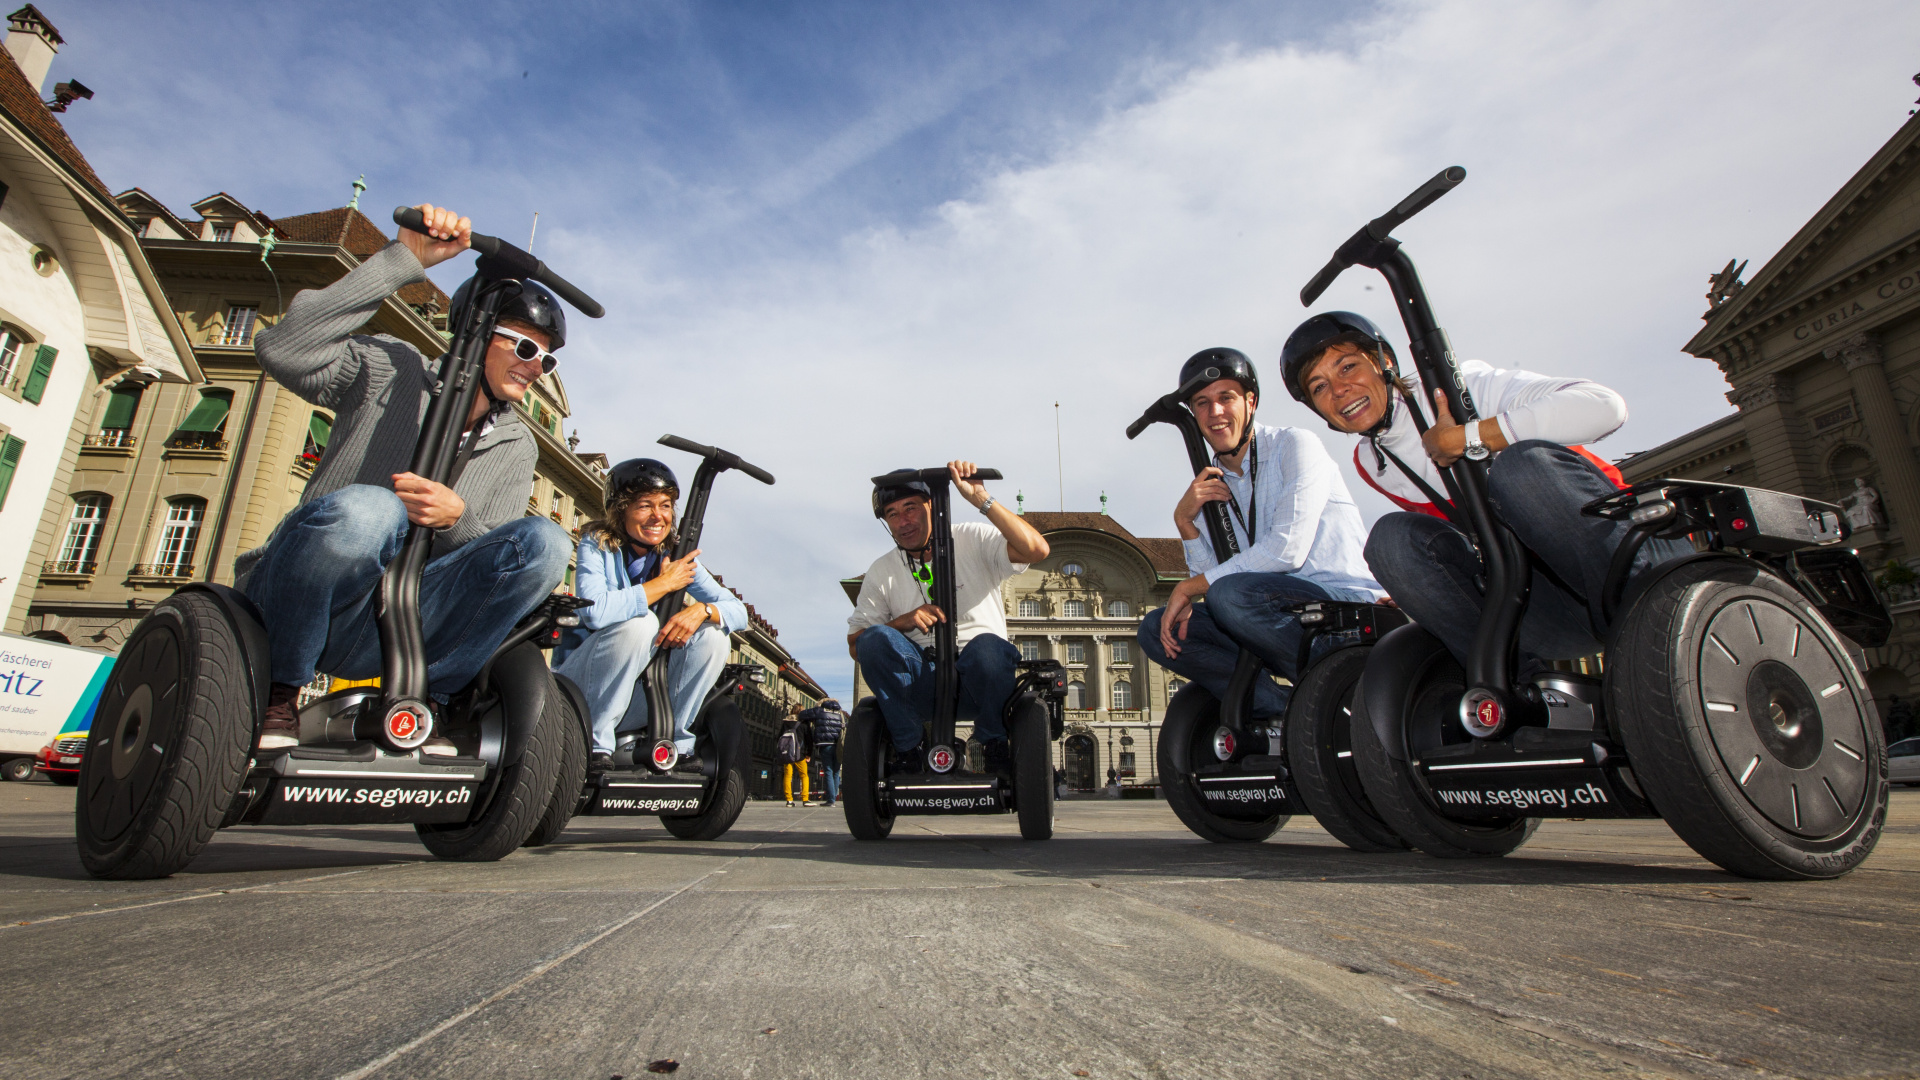 Dec 04, · City Segway Tours specializes in offering an exciting and unique tour of Washington, DC. Whether you are a tourist or a local, City Segway Tours promises to provide a tour that cannot be duplicated. Our customer service and attention to detail is top notch!/5().